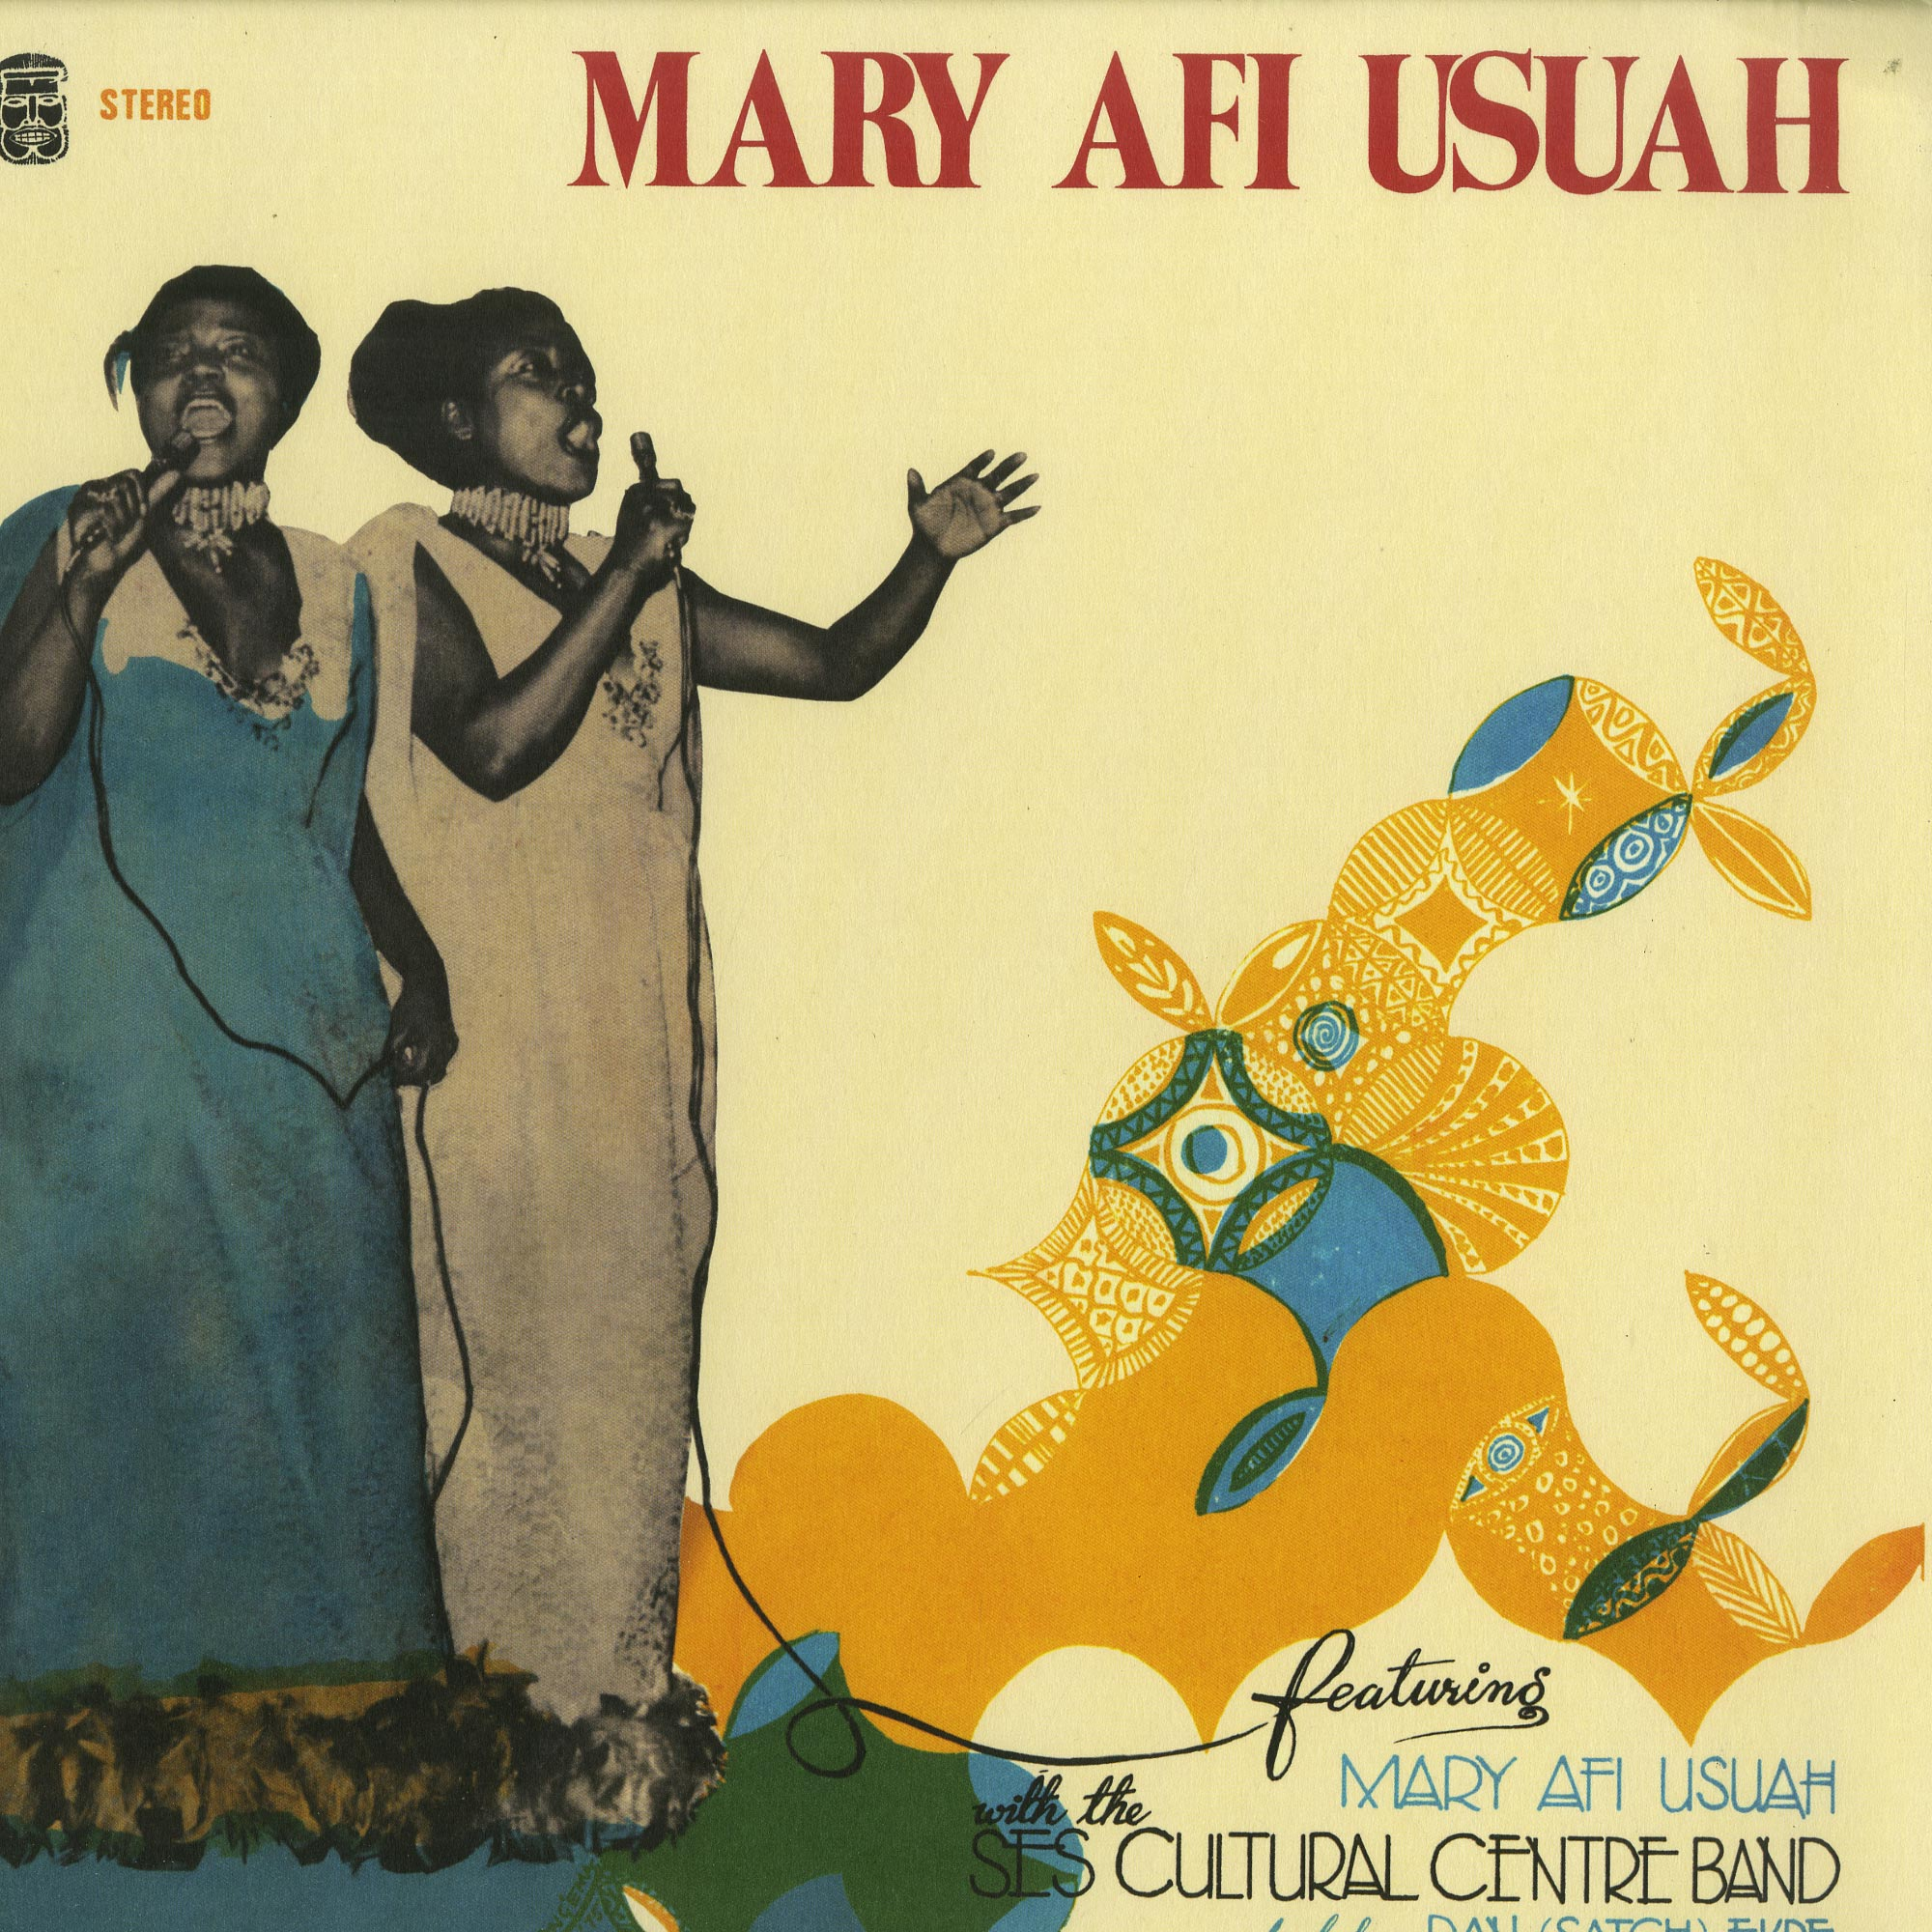 Mary Afi Usuah & The South Eastern State Cultural Band - EKPENYONG ABASI